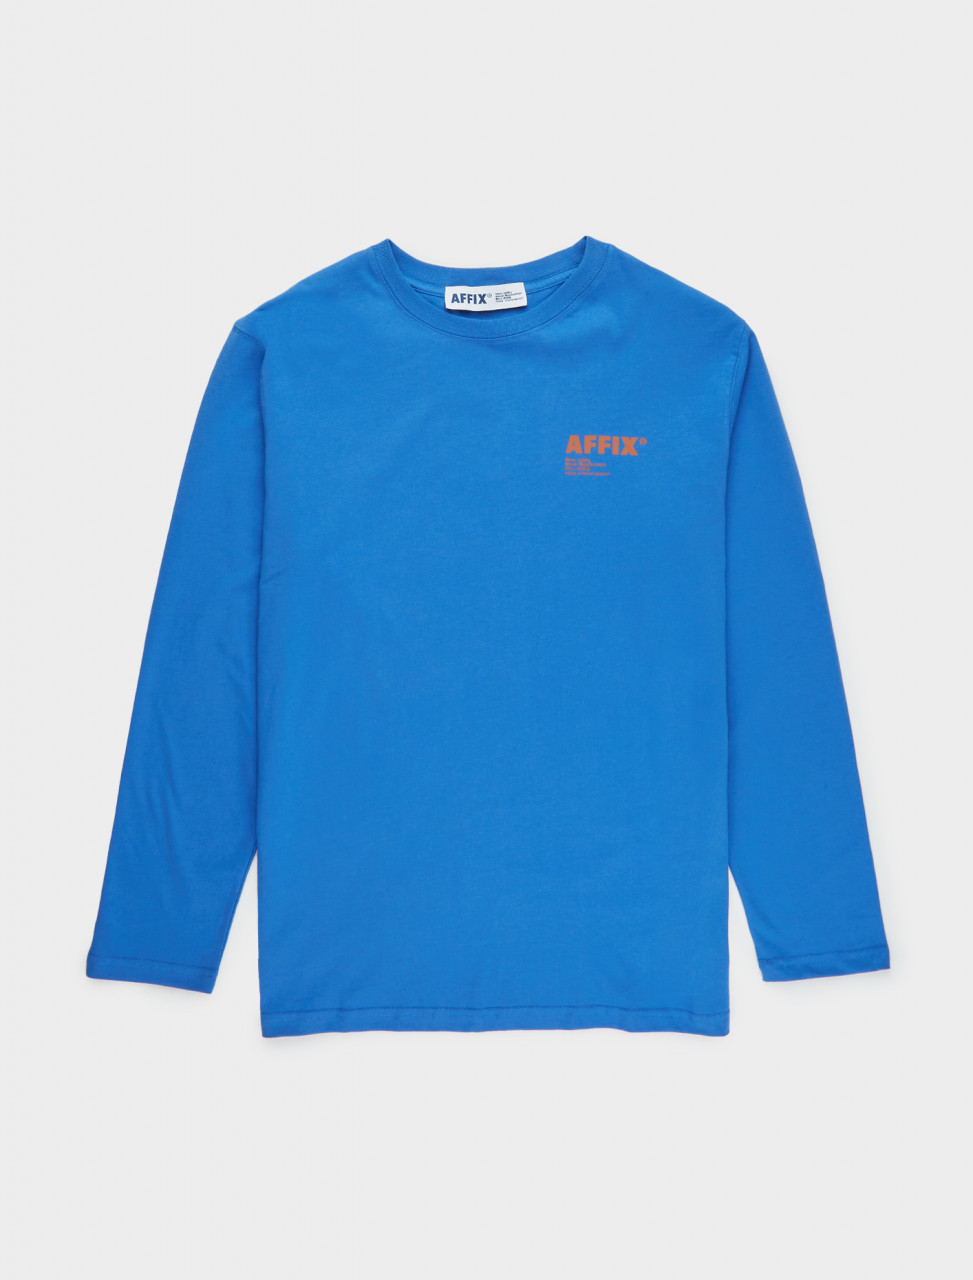 347-AW20TS01-C AFFIX Standardised Logo Long Sleeve T-Shirt in Cobalt